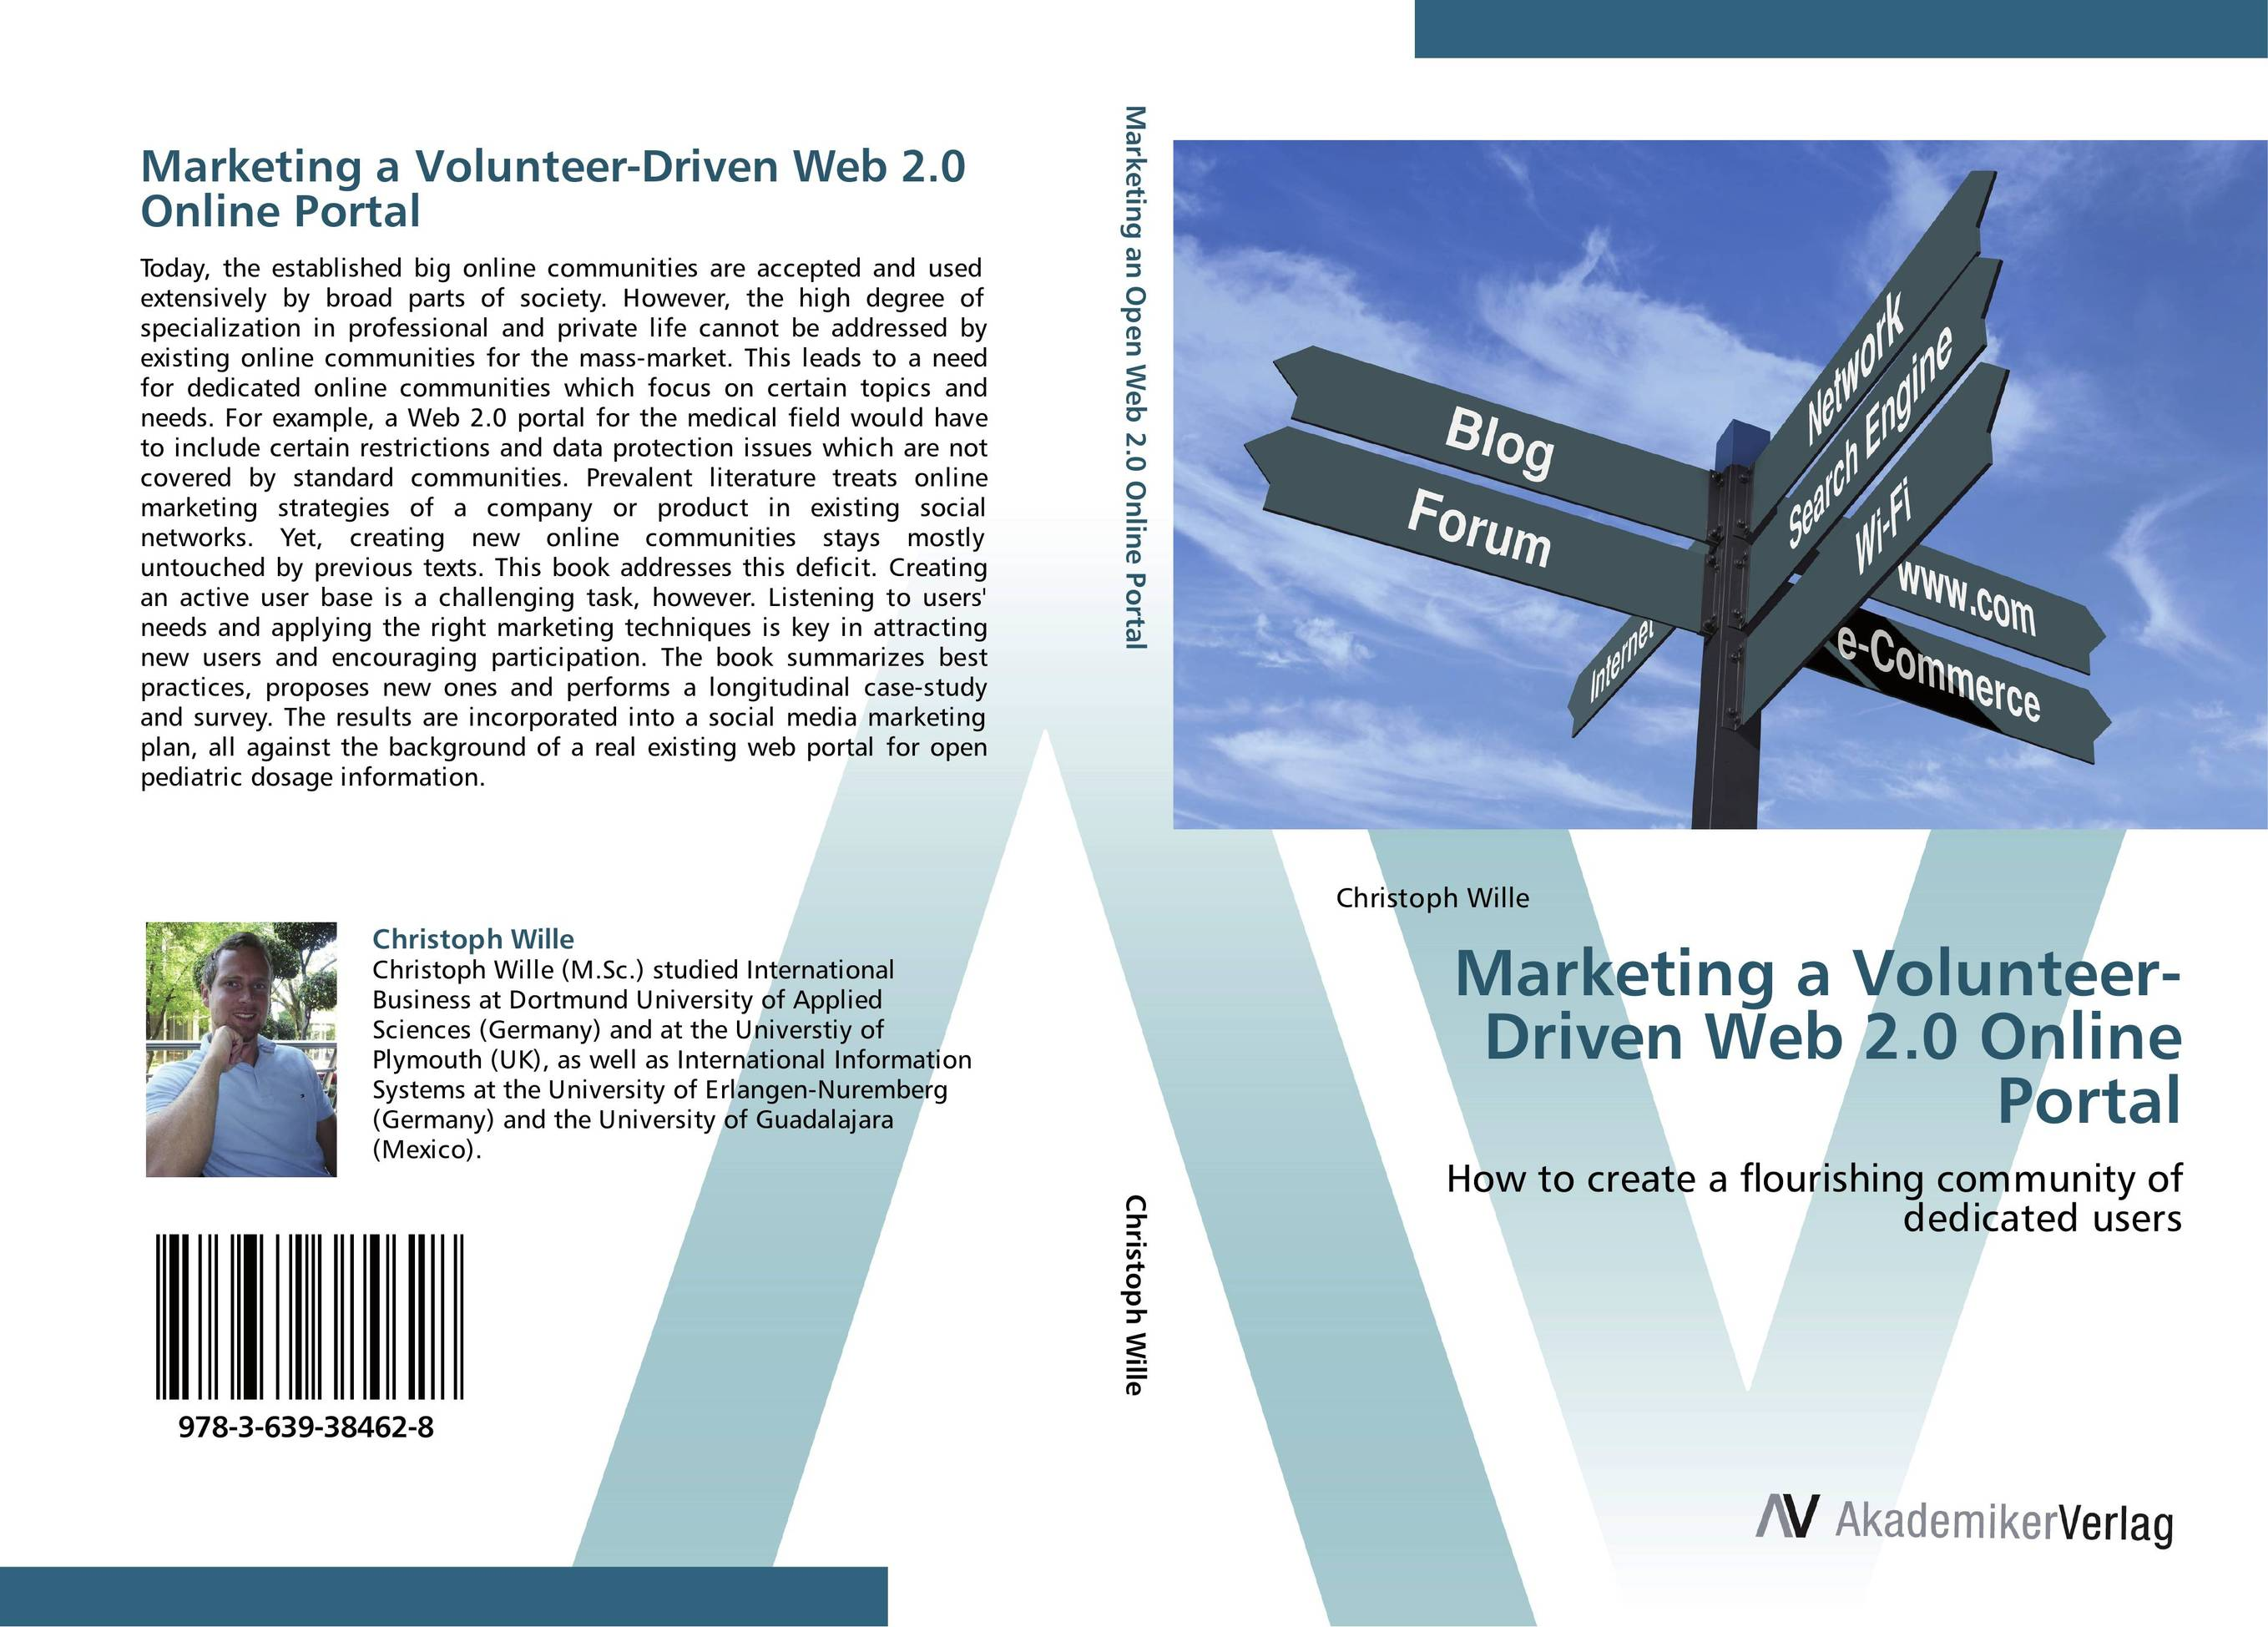 Marketing a Volunteer-Driven Web 2.0 Online Portal driven to distraction